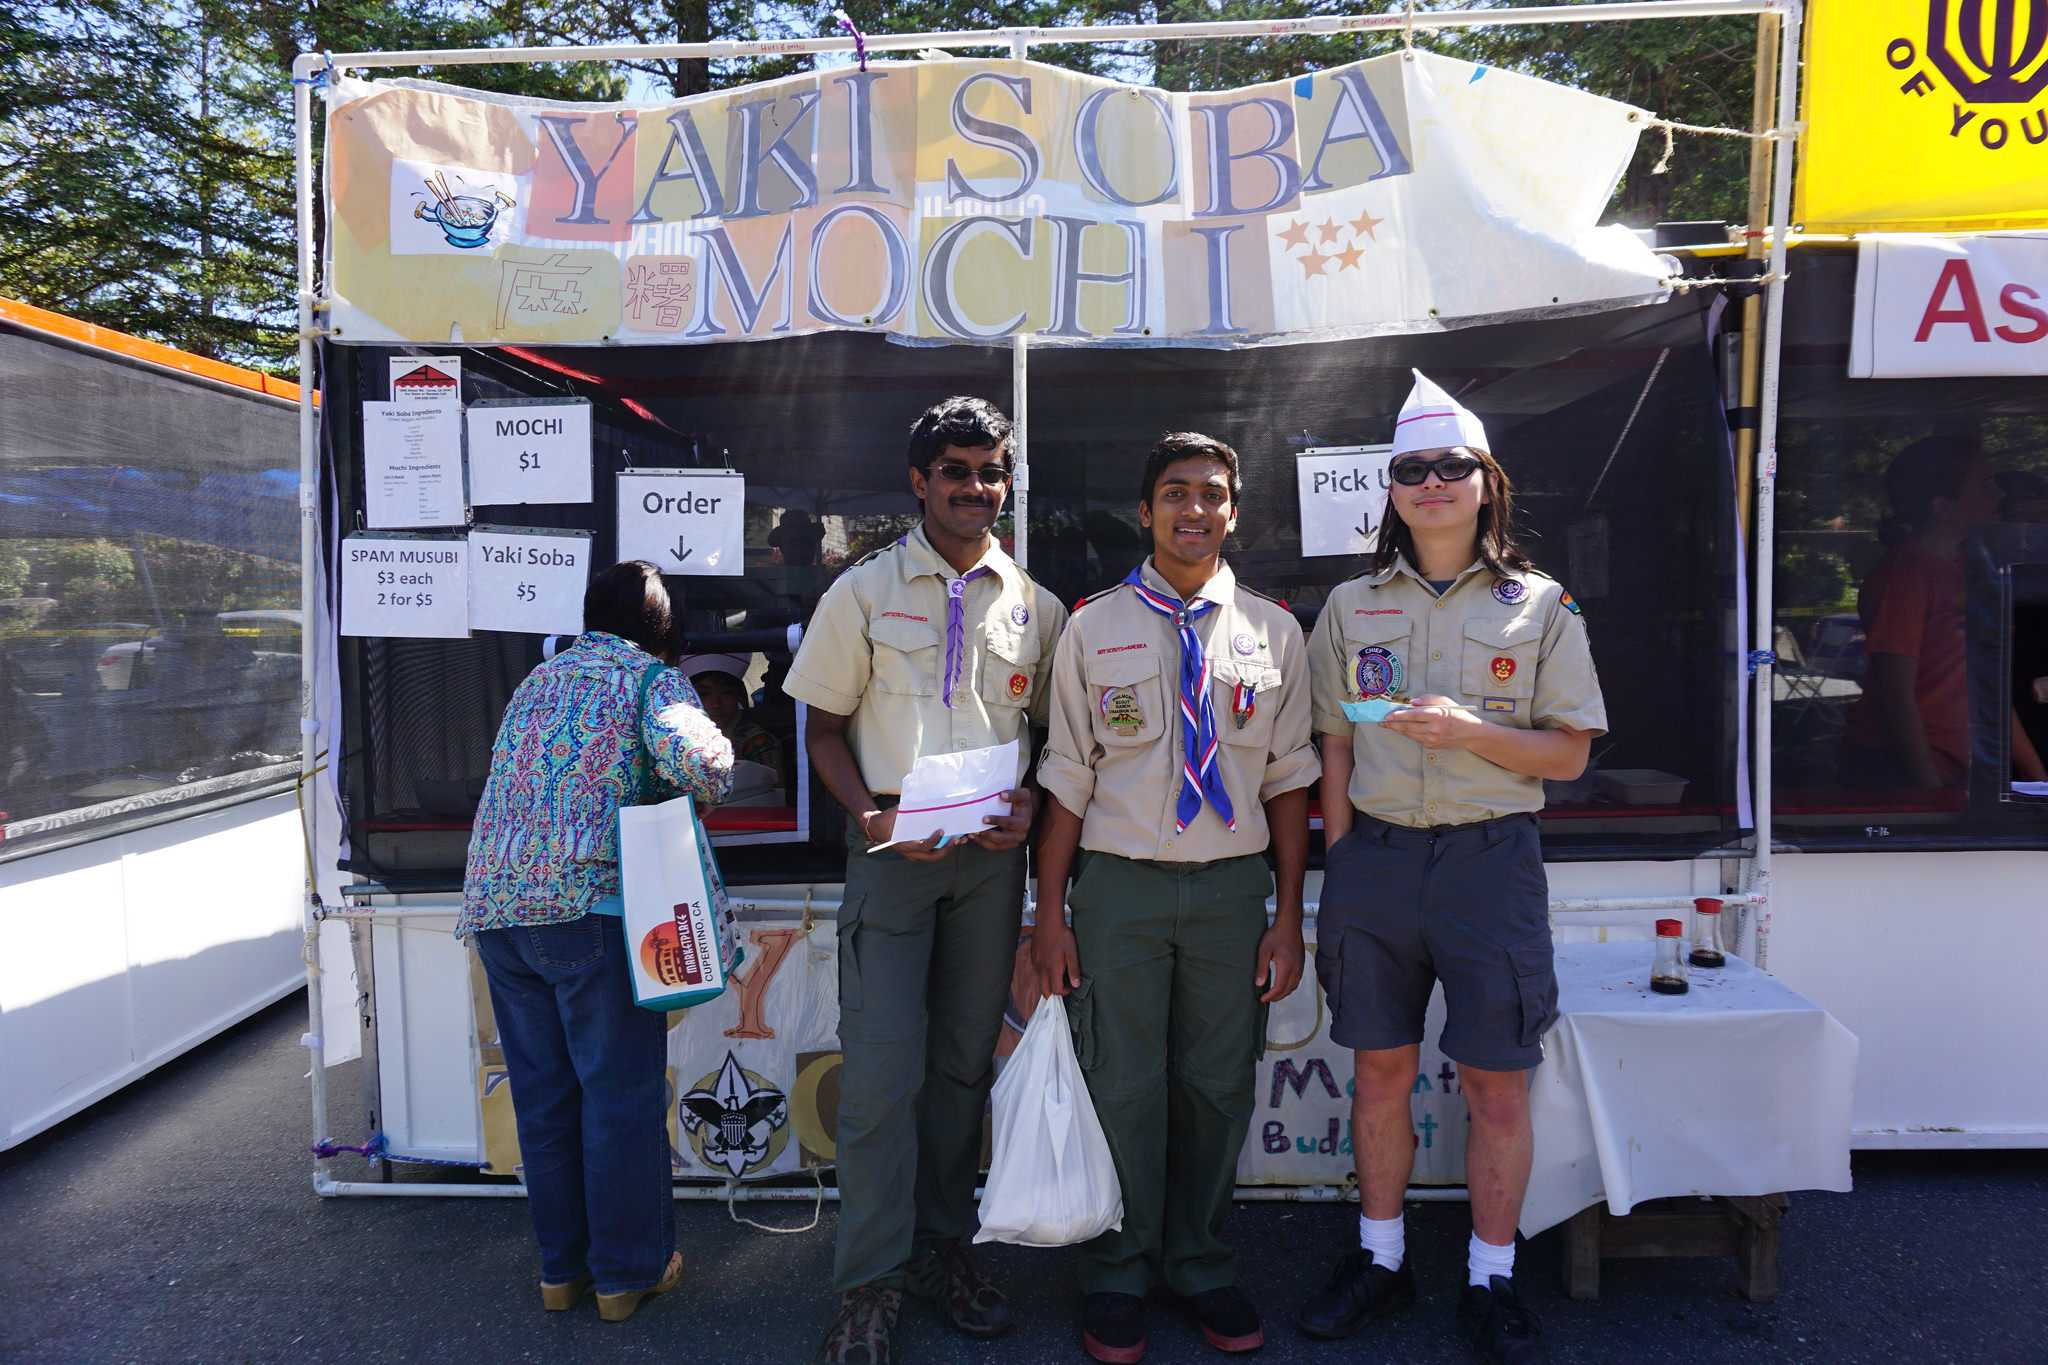 Scouts from Boy Scout Troop 487 stand in front of their Yakisoba Stand. Troop 487 reserves a stand at the Cherry Blossom Festival every year.